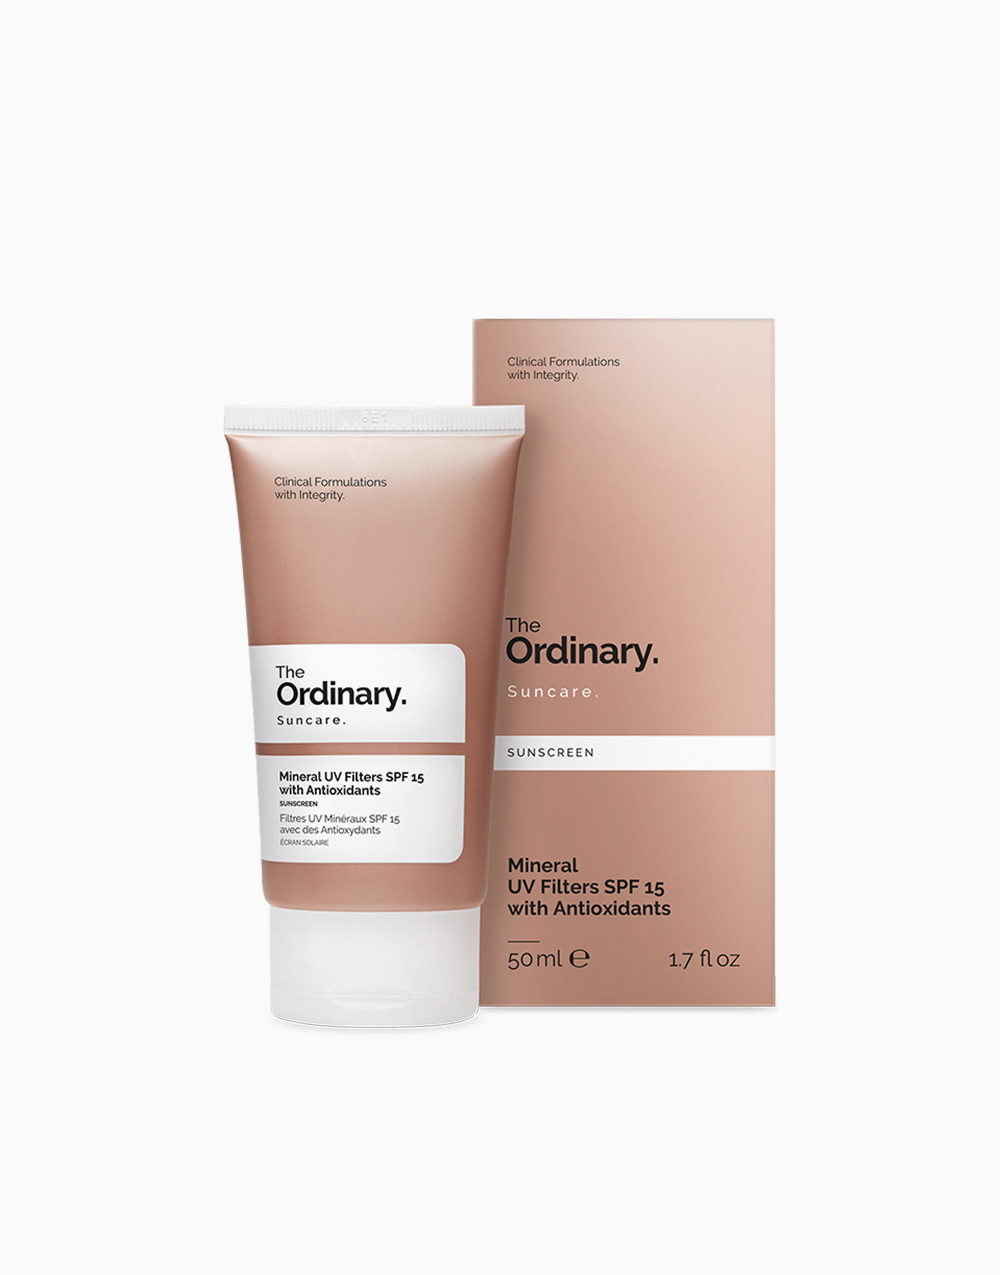 Mineral UV Filters SPF 15 with Antioxidants by The Ordinary